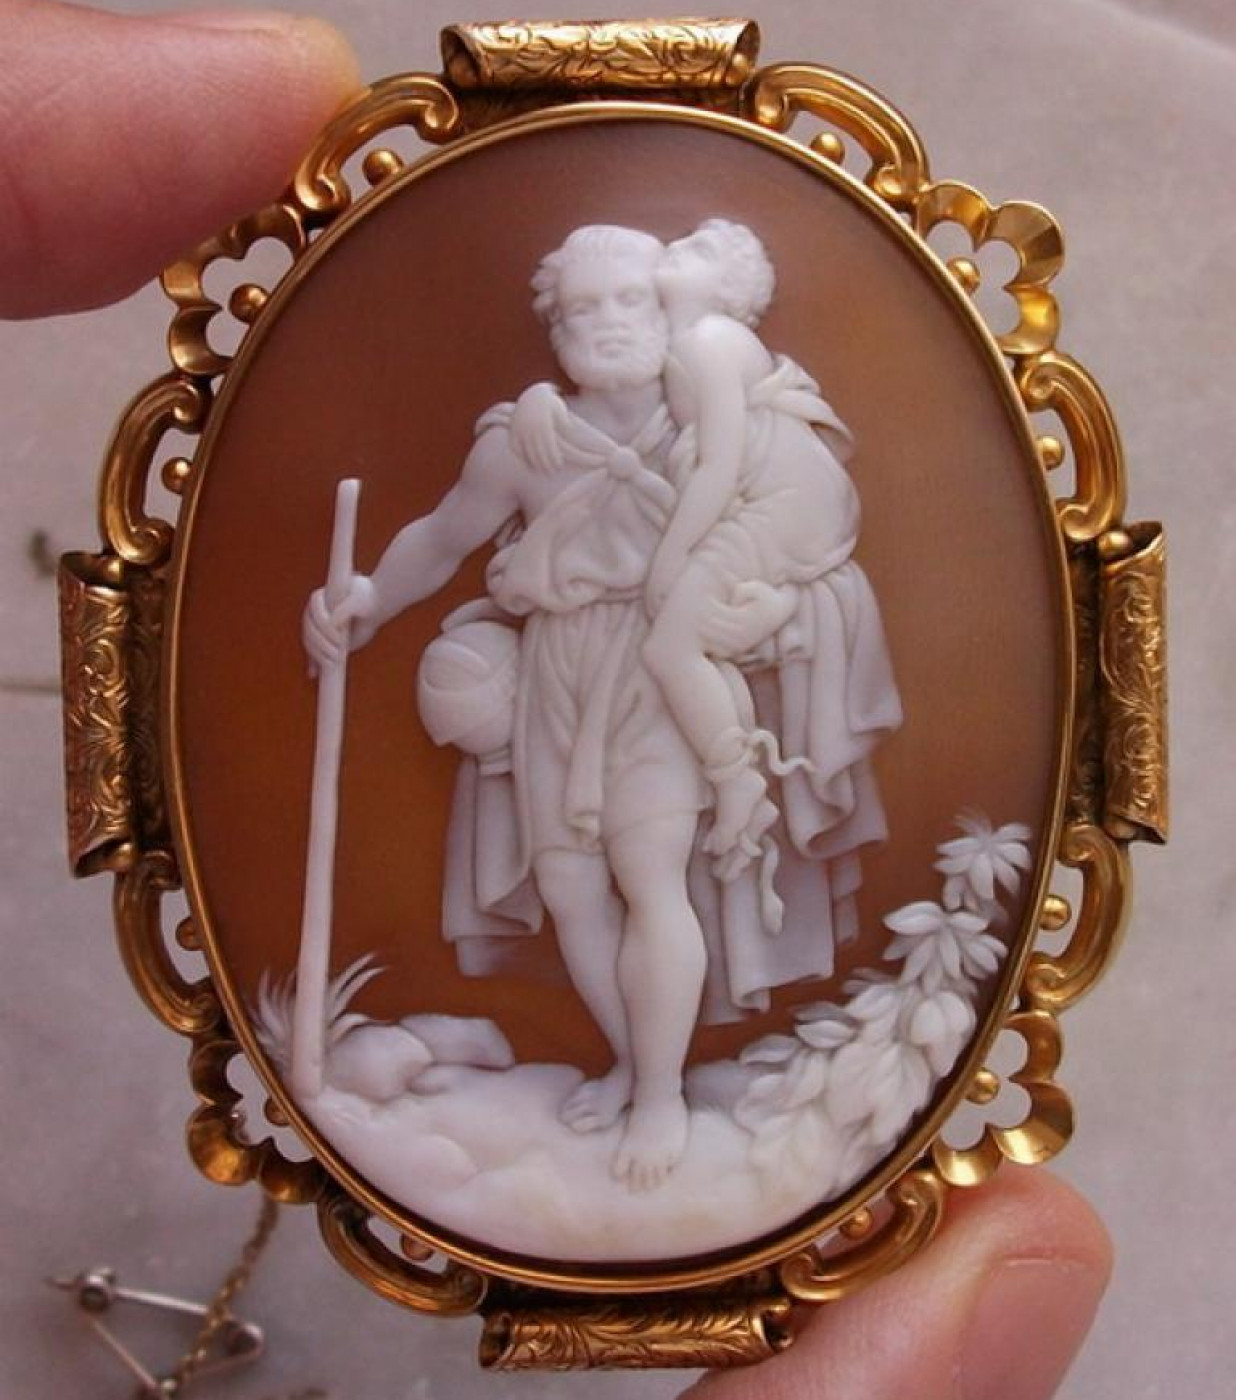 Rarest Cameo of St. Christopher